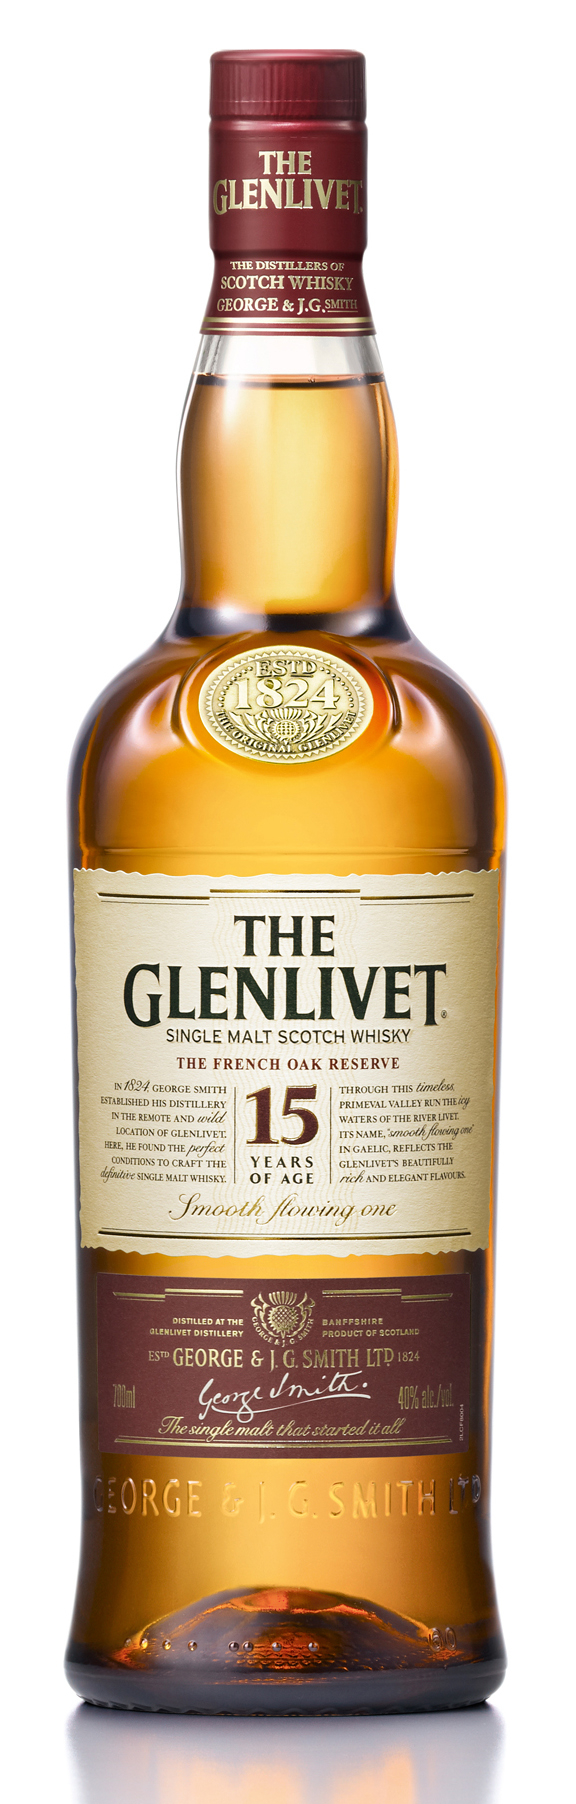 Billede: The Glenlivet 15 French Oak Reserve.jpg